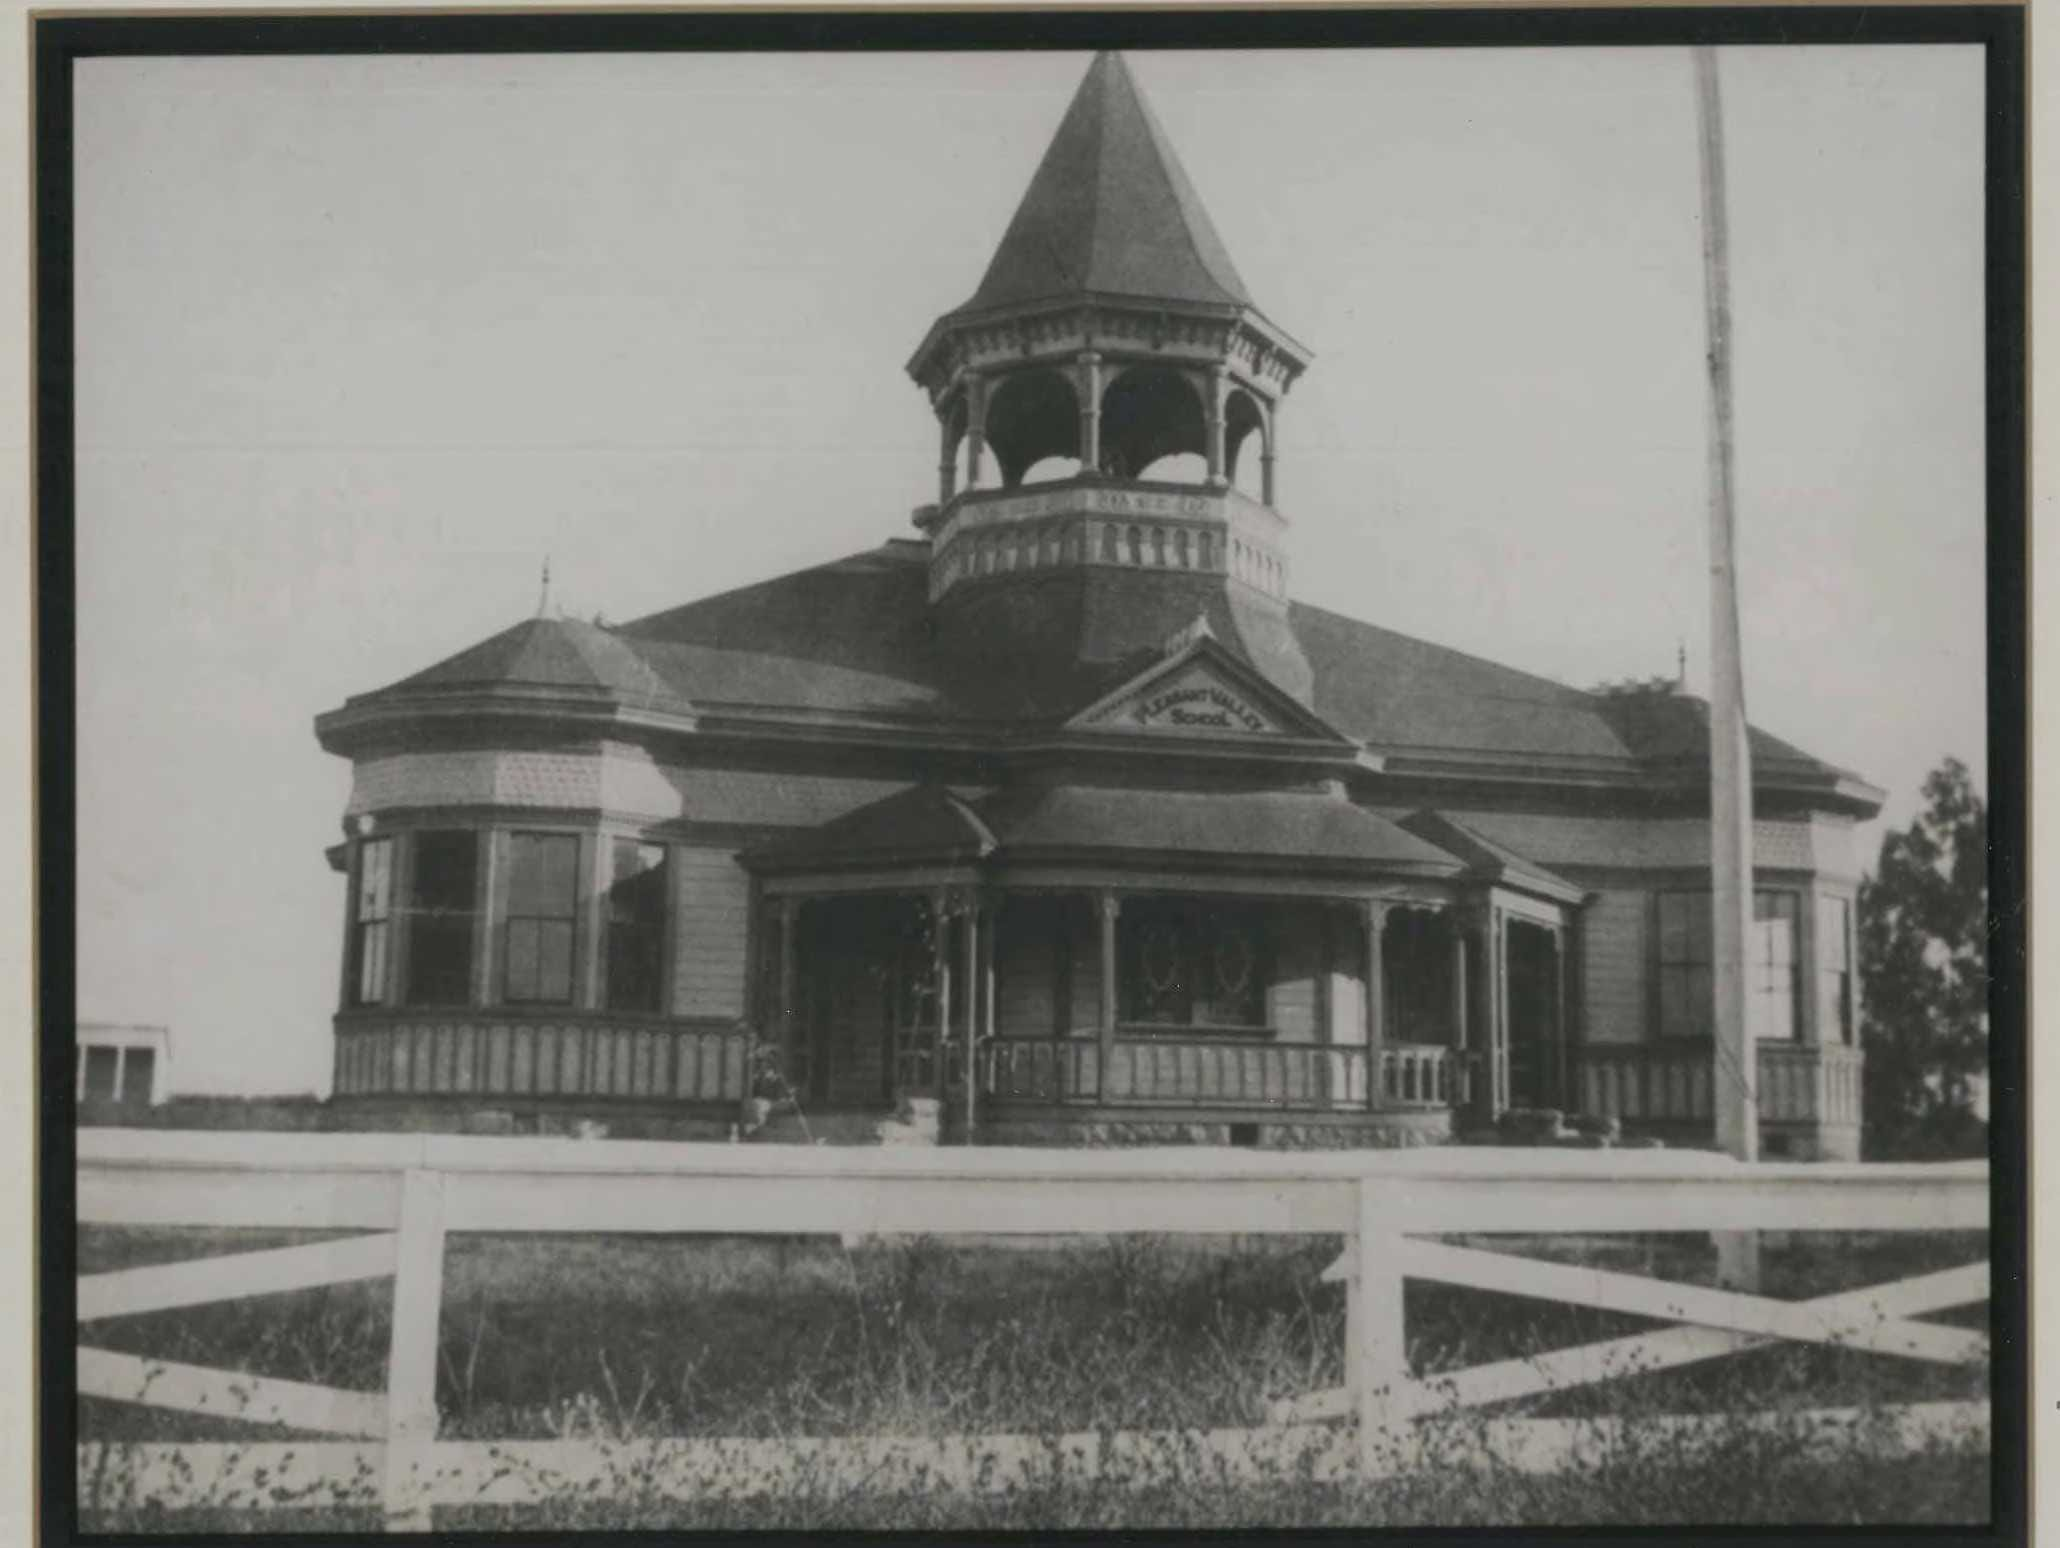 The school house where Pleasant Valley students attended beginning in 1868.